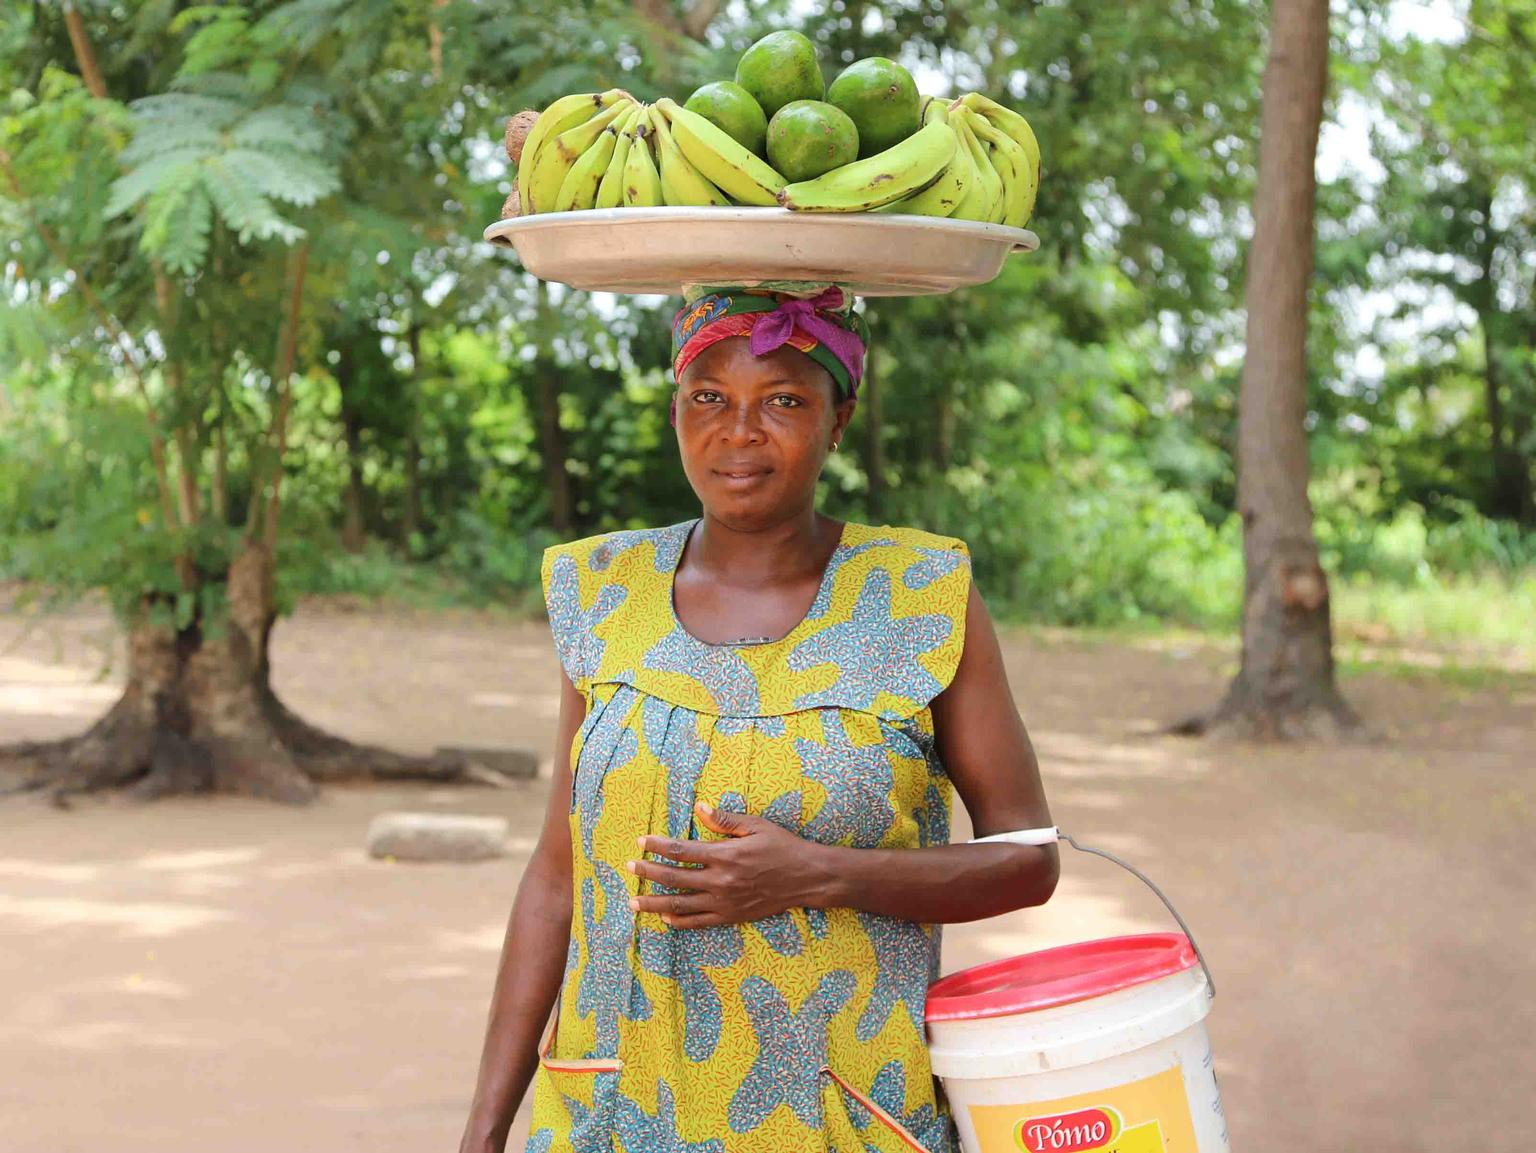 A woman carries fruit in a basket on her head